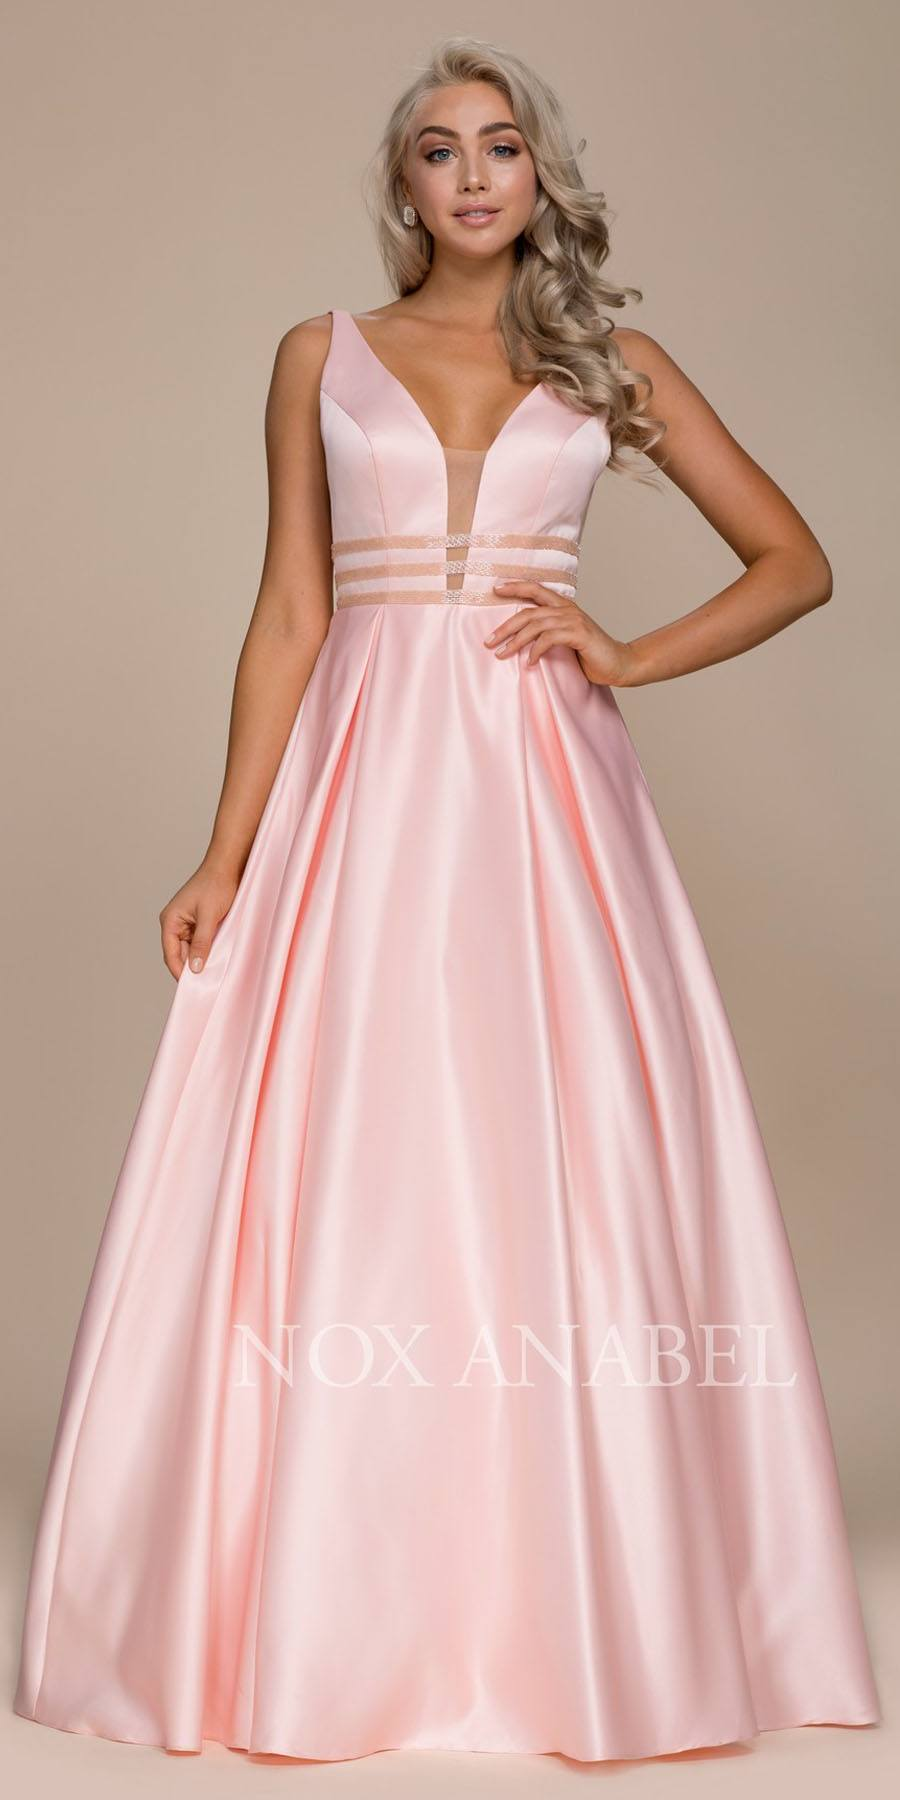 91ddb3bc531 Blush V-Neck Long Prom Dress Sheer Cut Out with Pockets. Tap to expand